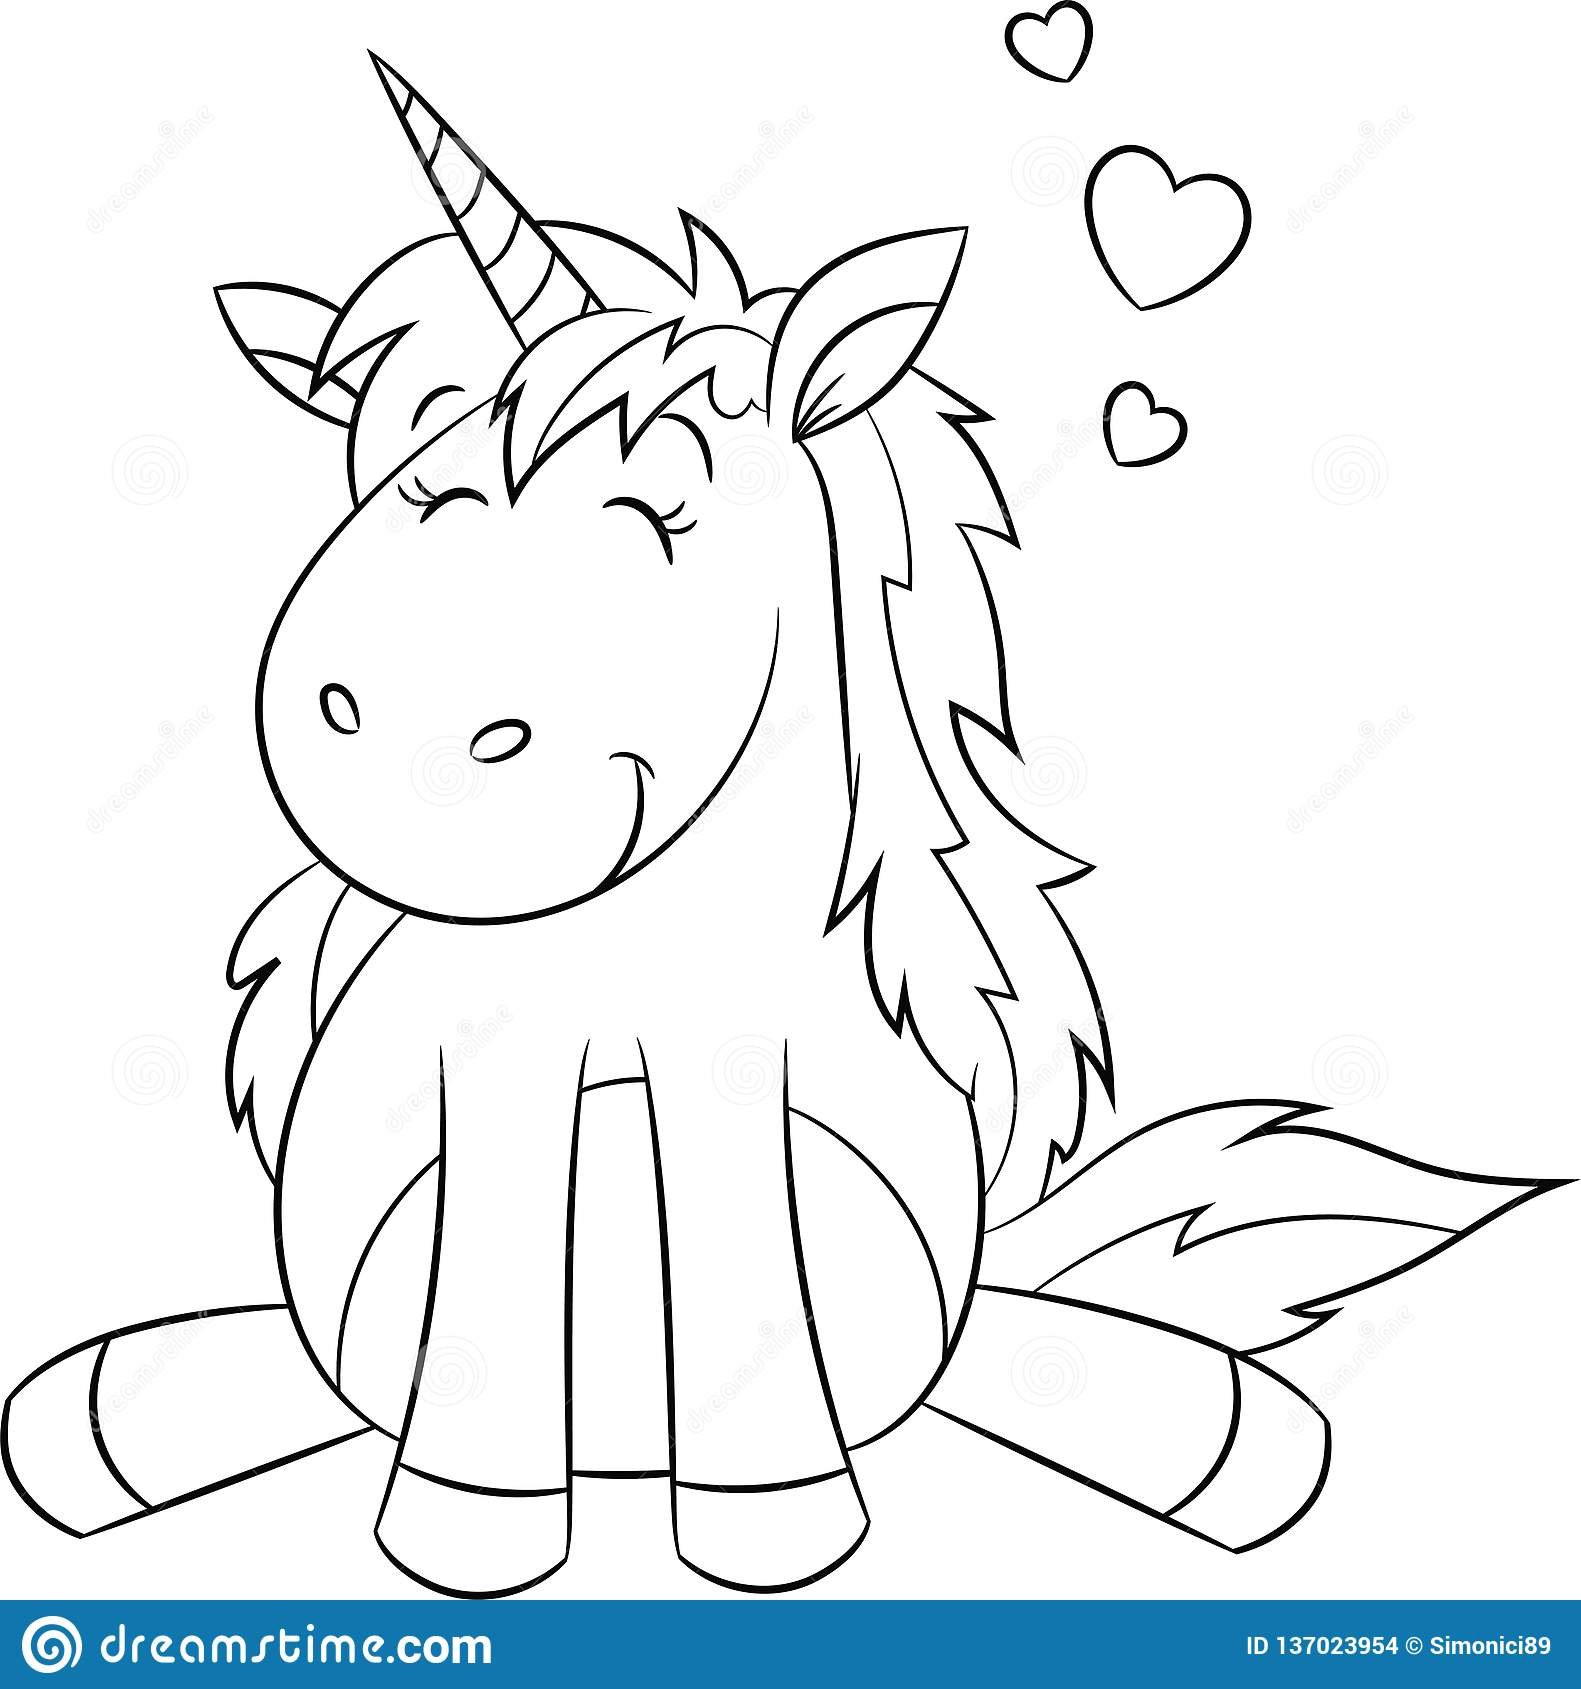 Kawaii Black And White Illustration Of A Unicorn, With